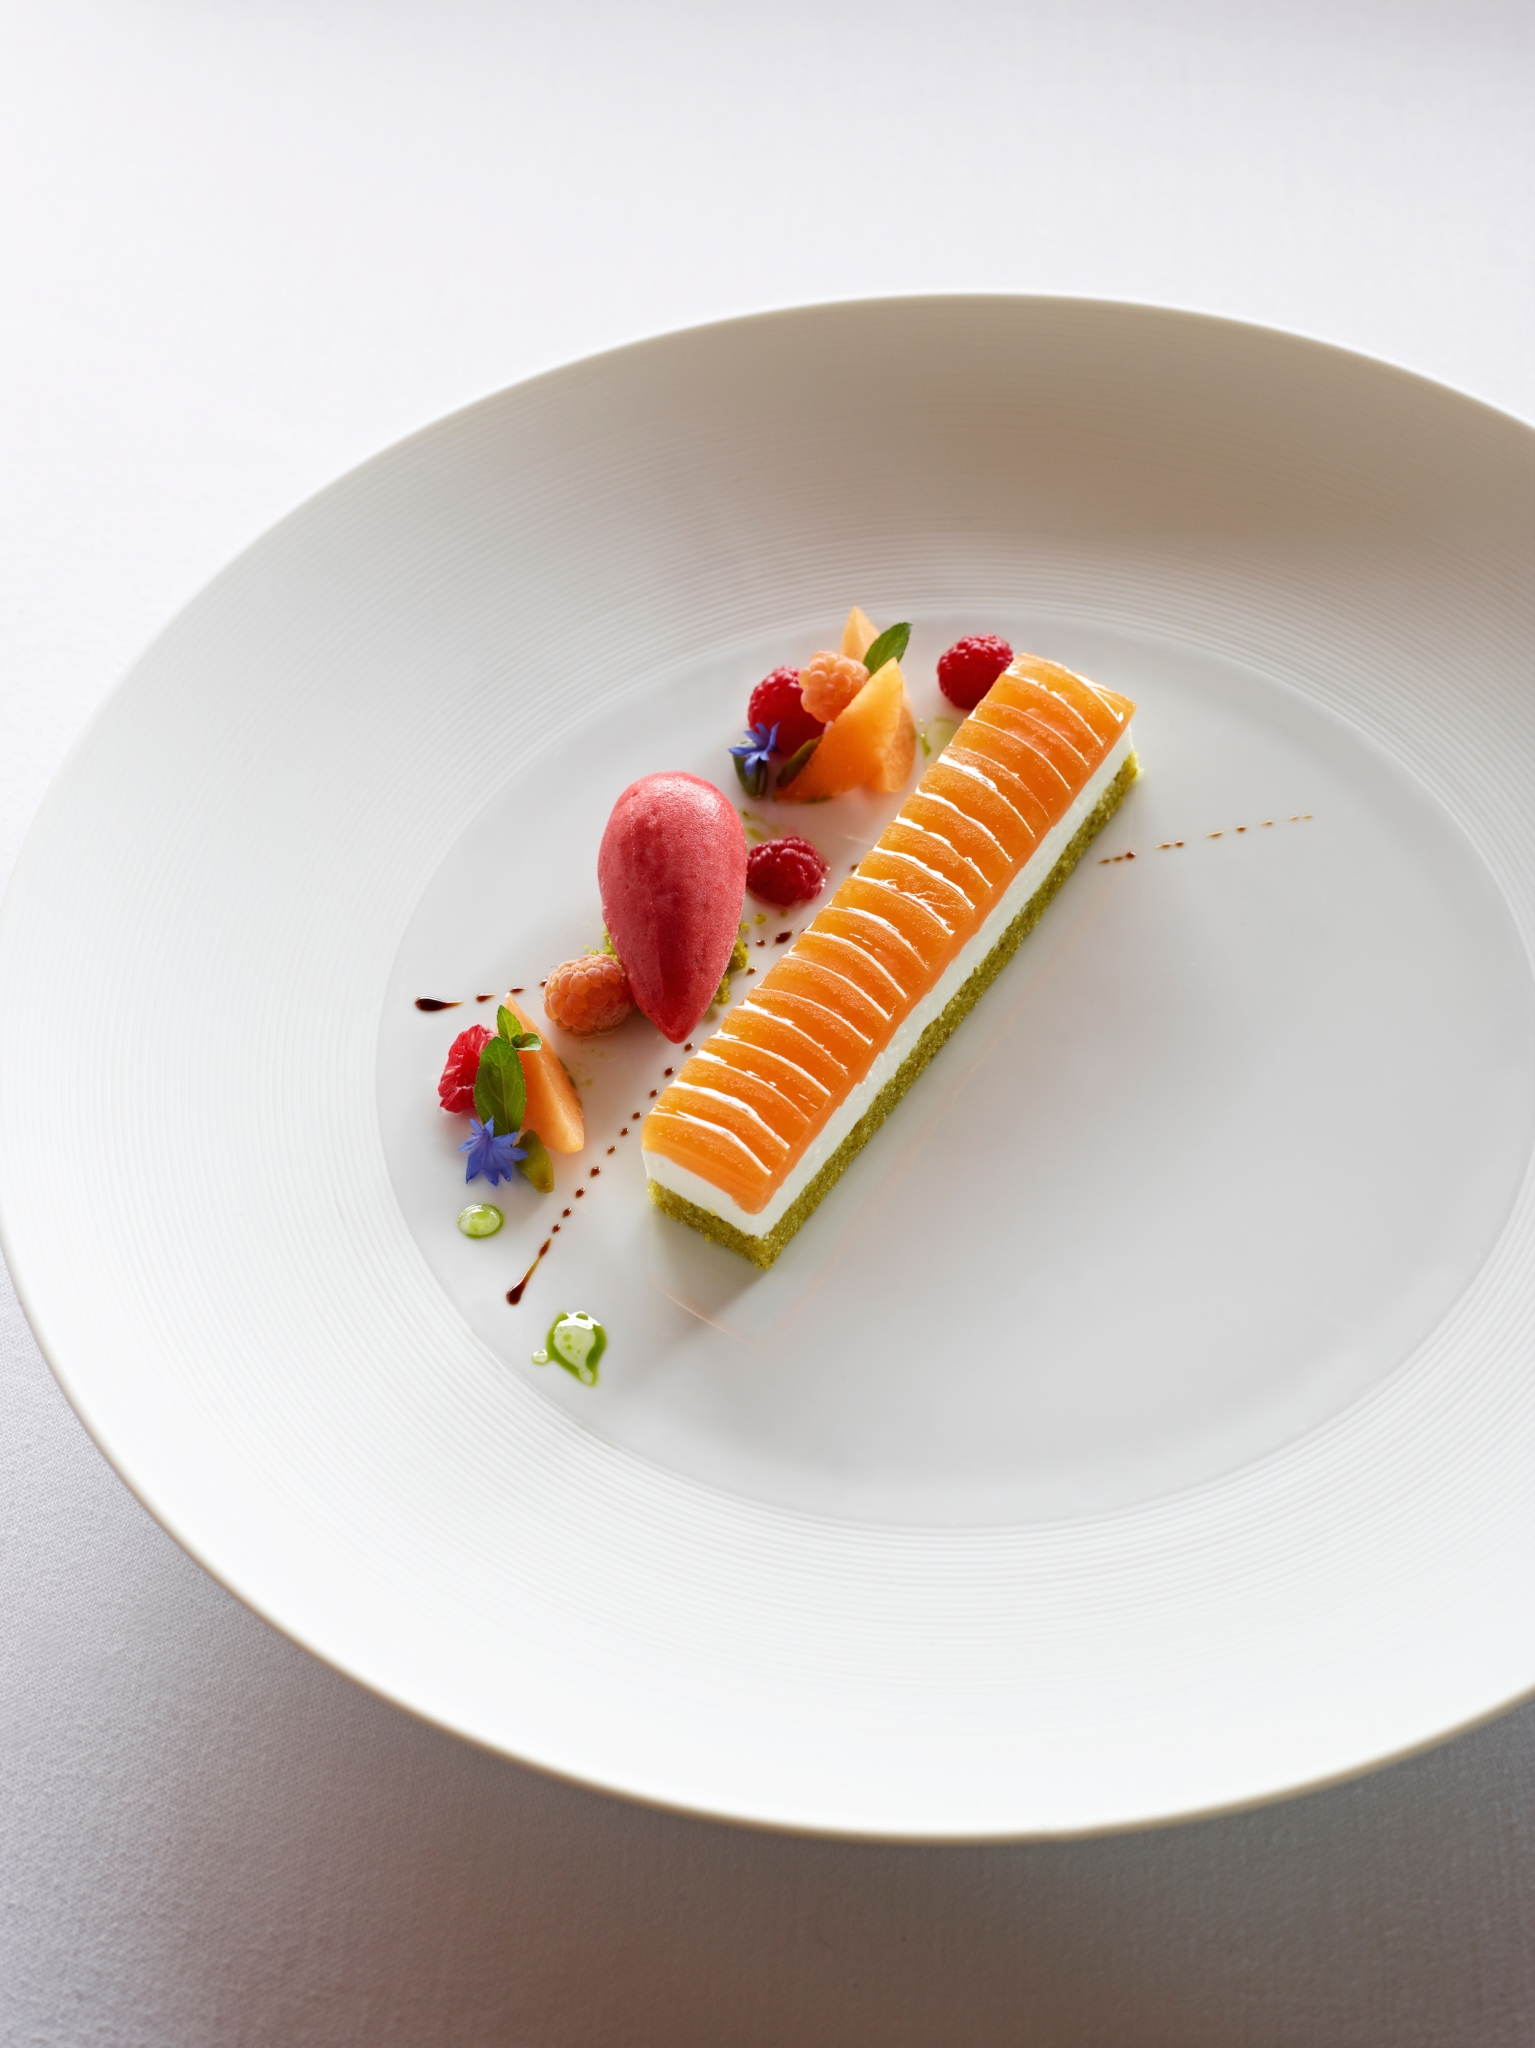 Incredible restaurants worth planning a trip around sfgate for Nouvelle decoration cuisine